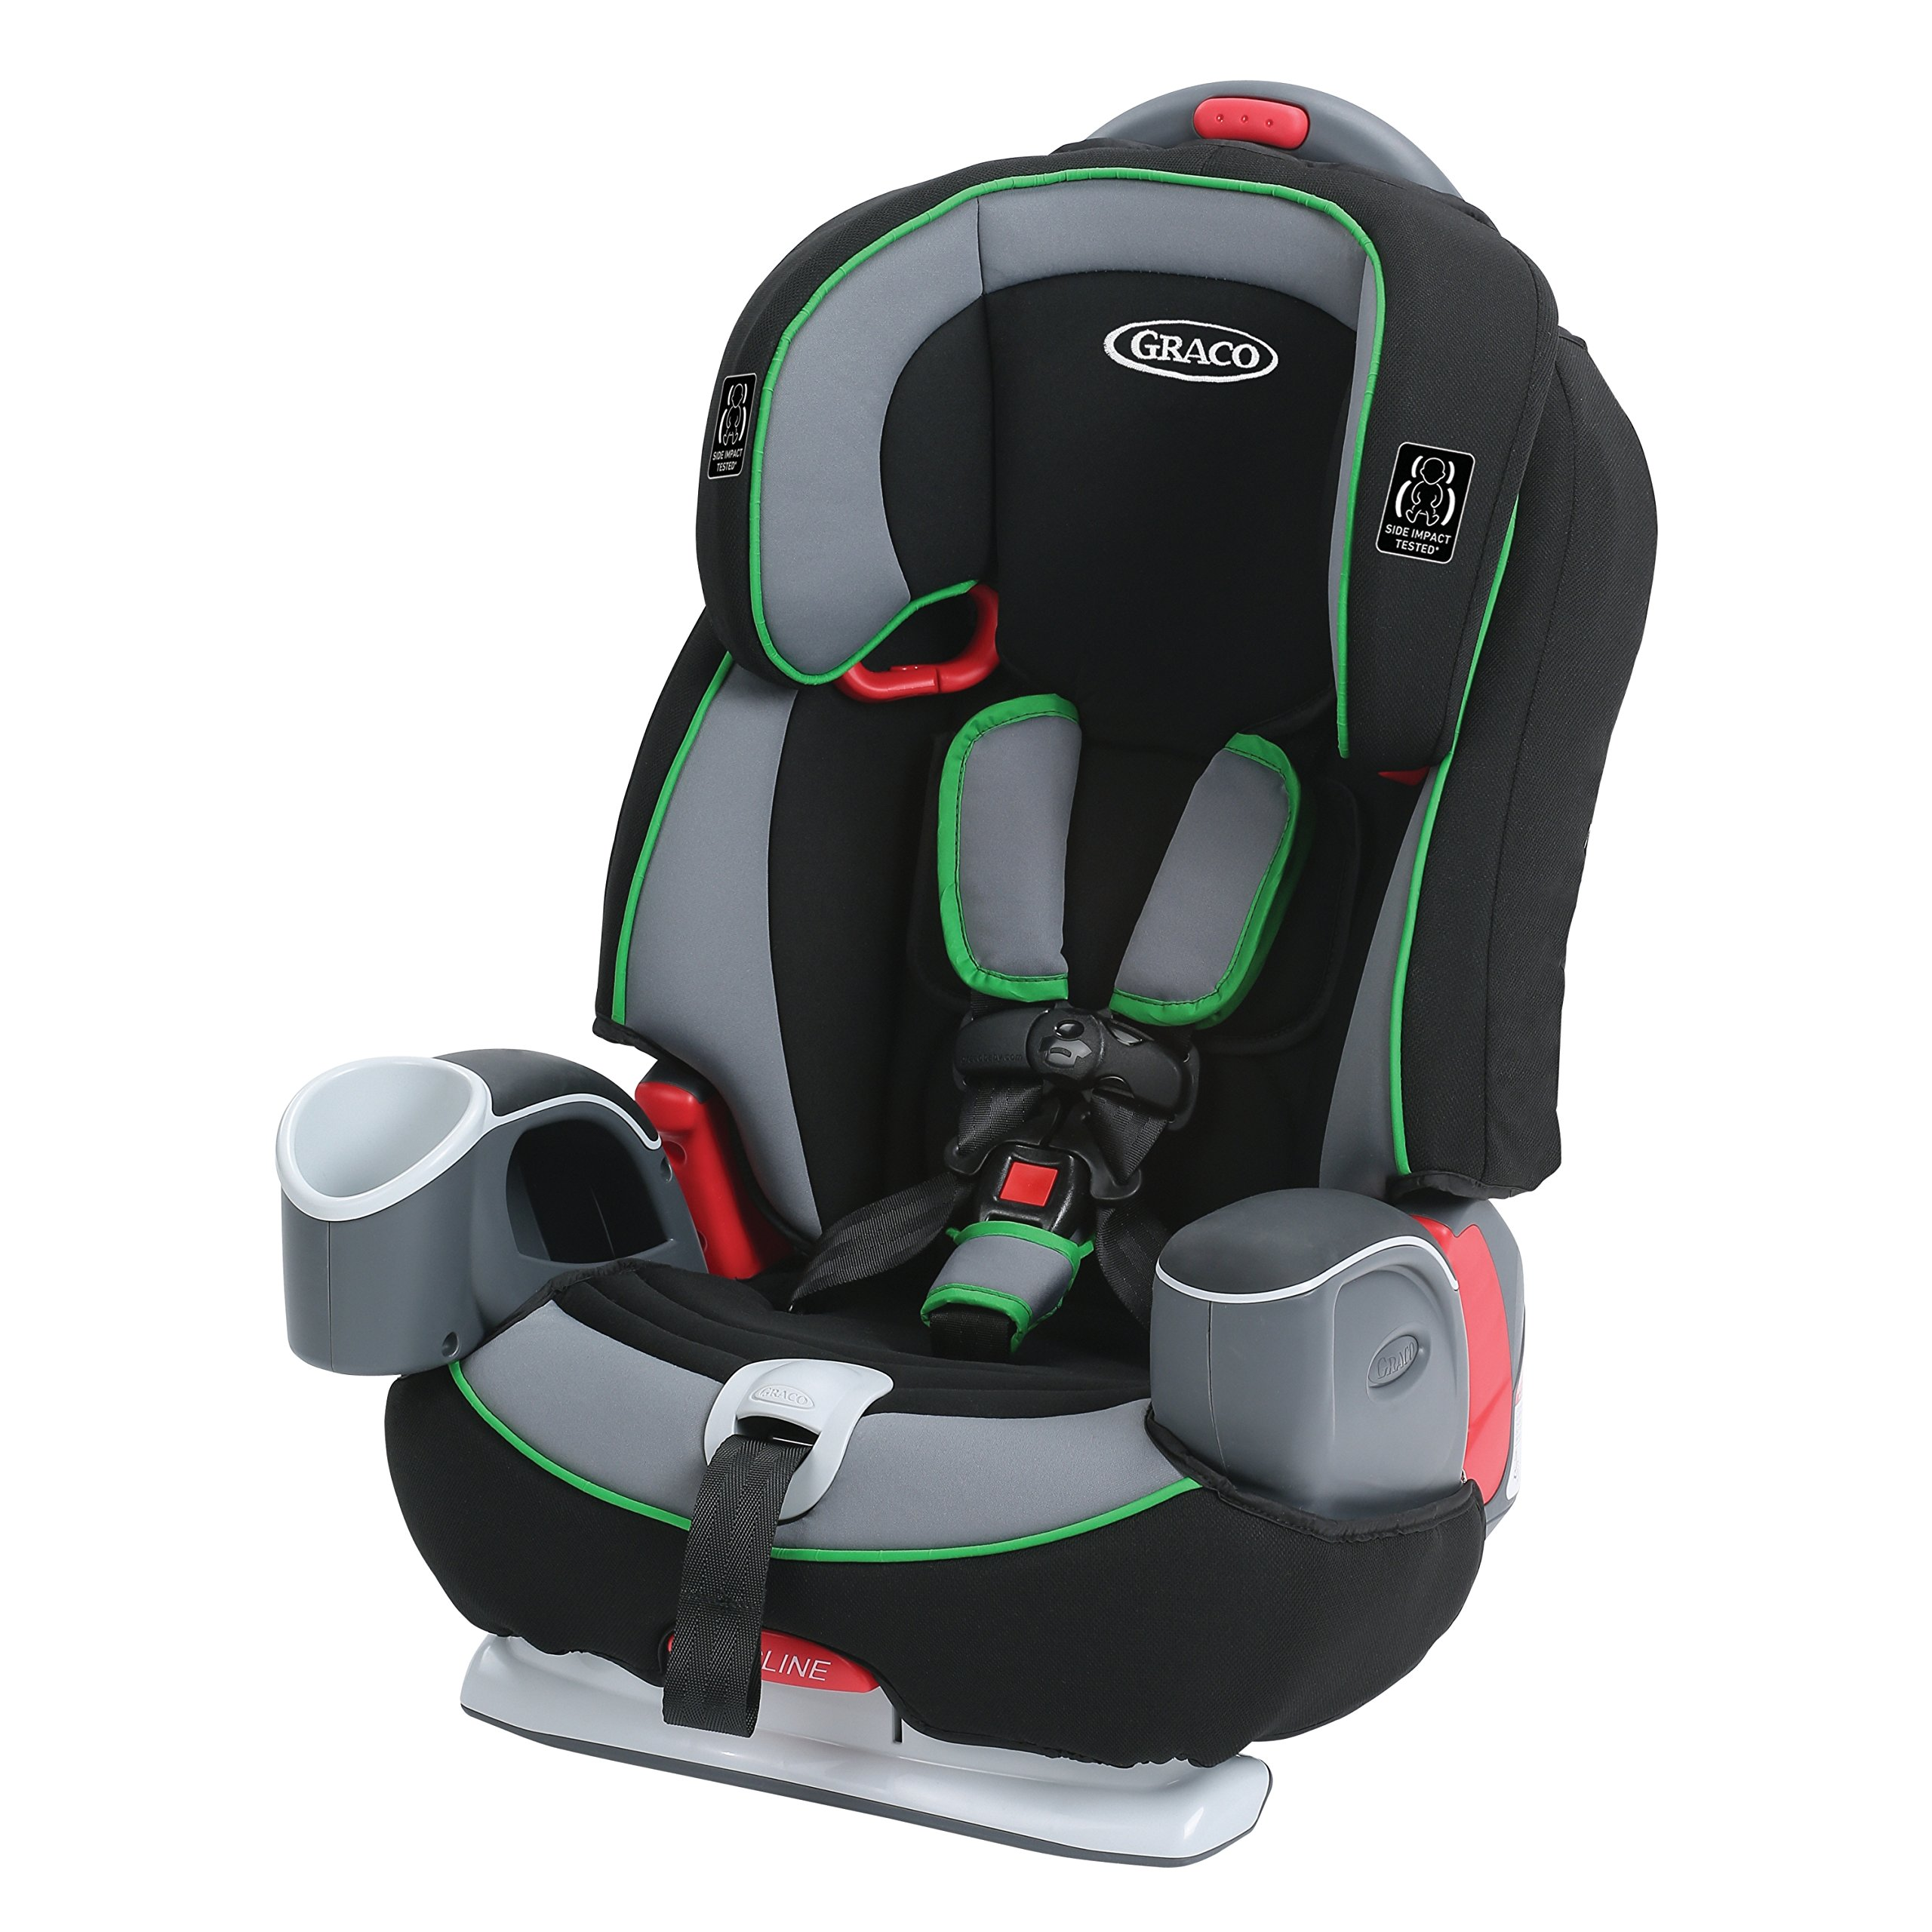 amazon com graco nautilus 65 3 in 1 harness booster car seat rh amazon com Evenflo Car Seat Model Numbers Britax Car Seats